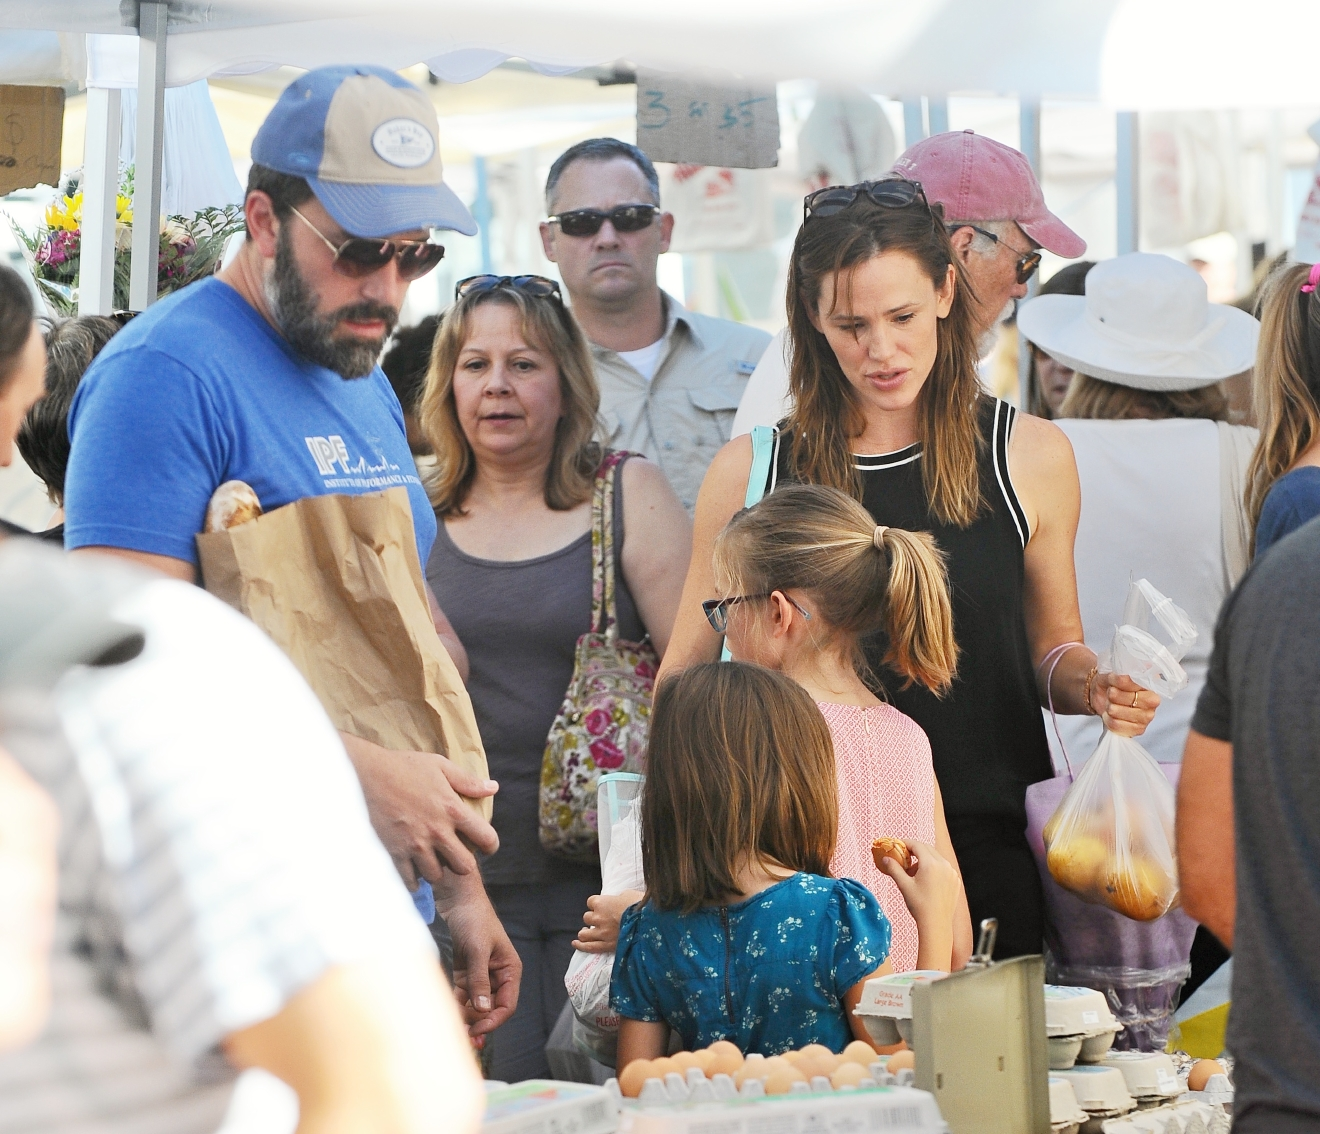 Ben Affleck and Jennifer Garner take their children to the Pacific Palisades Farmers Market. Ben could be seen without his wedding ring.  Featuring: Jennifer Garner, Ben Affleck, Violet Affleck, Seraphina Rose Affleck Where: Los Angeles, California, United States When: 20 Sep 2015 Credit: WENN.com